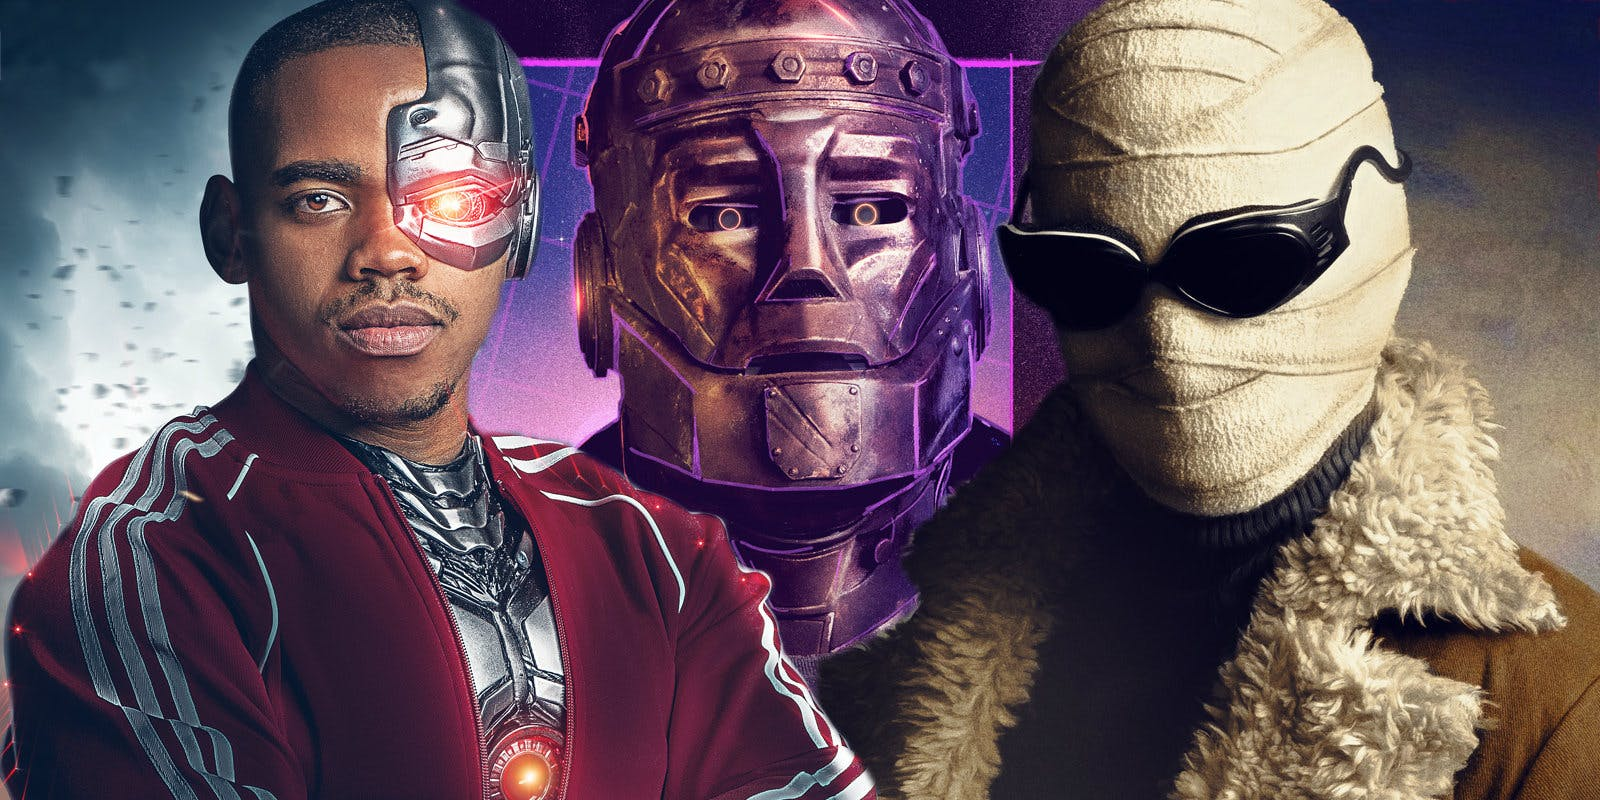 Doom Patrol season 2 release date update